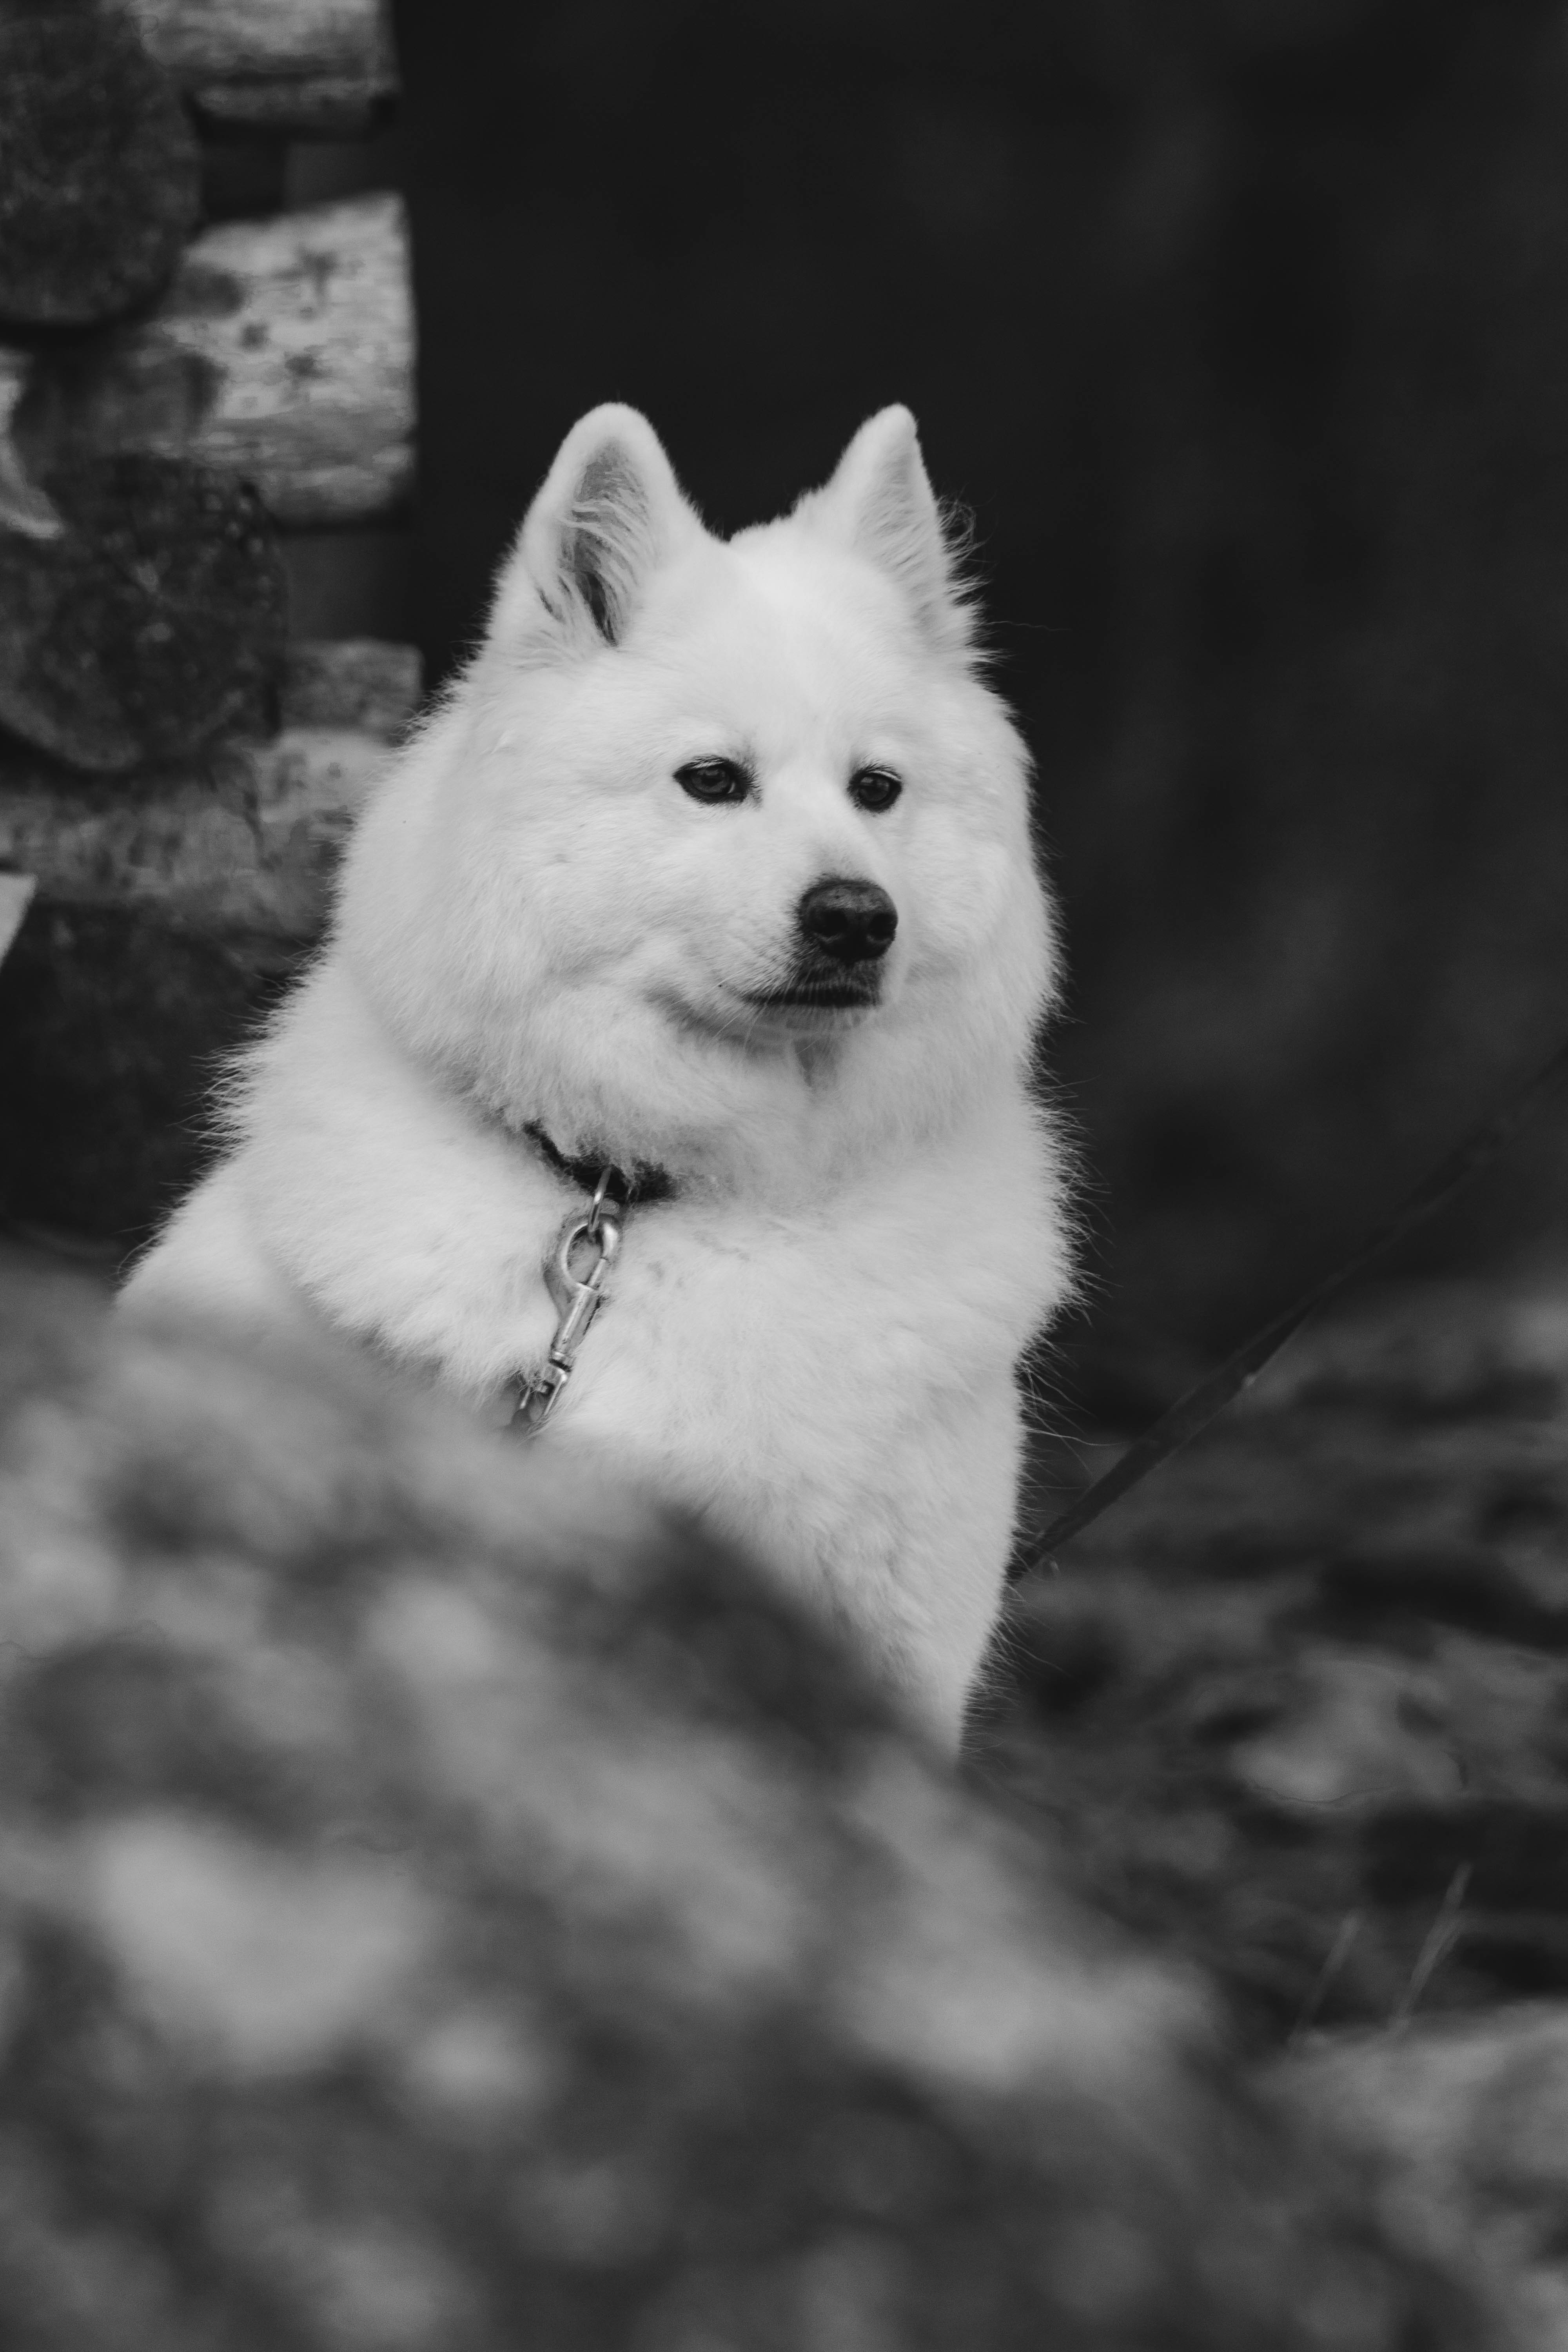 120963 download wallpaper Animals, Dog, Fluffy, Pet, Bw, Chb screensavers and pictures for free